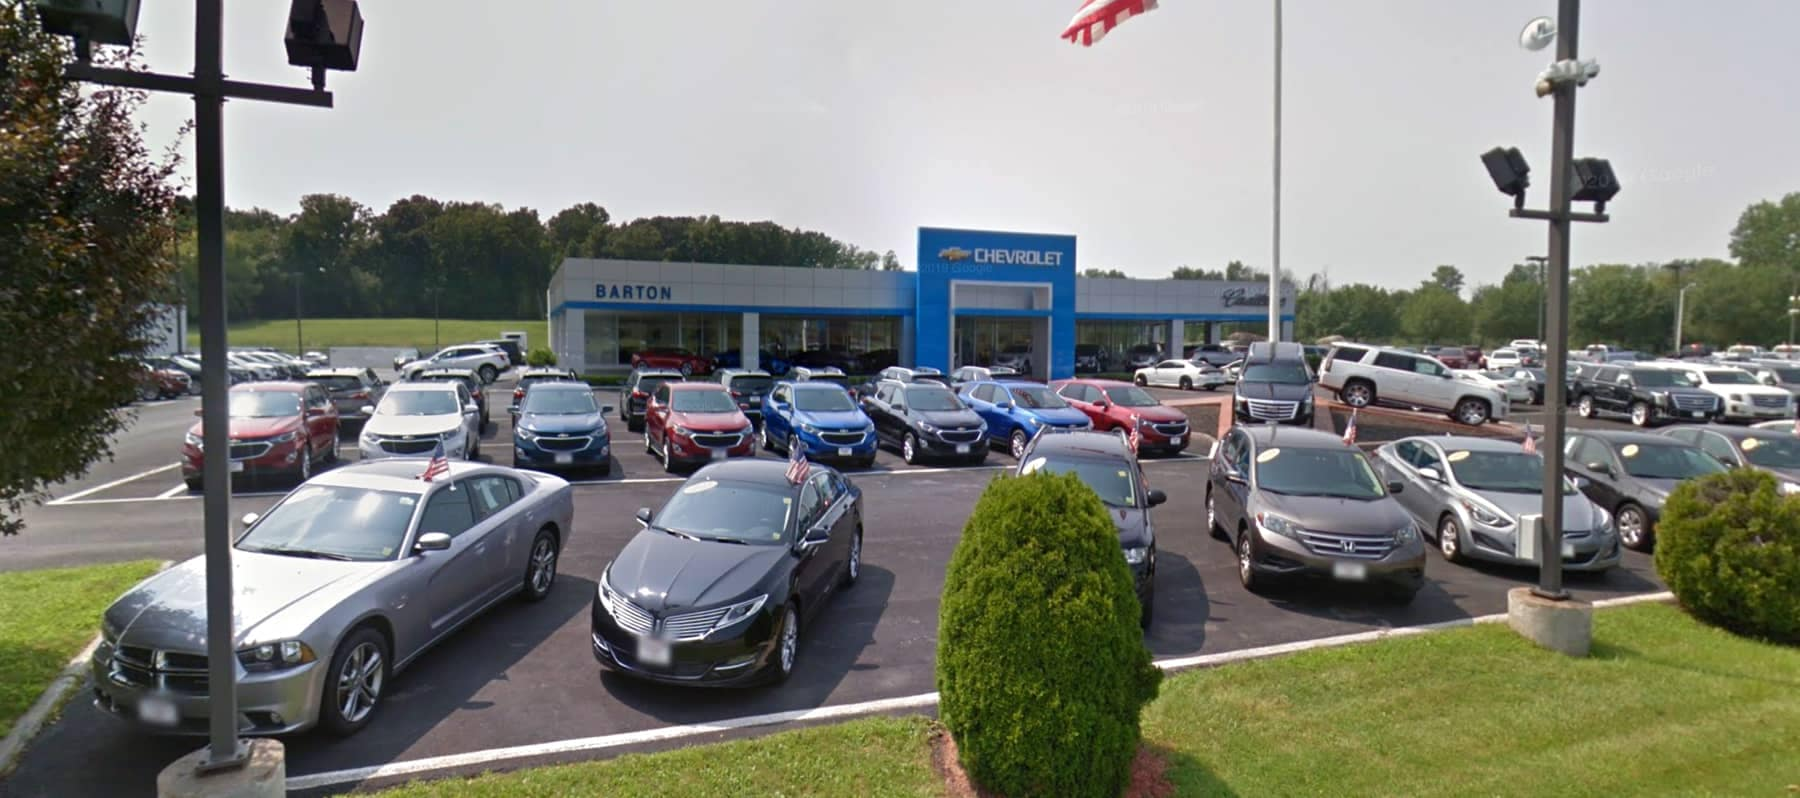 At Barton Chevrolet we are a market price, one price used car store. We price our cars at or below market value to take the tasteless negotiations out of the process and let you own the vehicle at a price that you would if you were an expert negotiator.